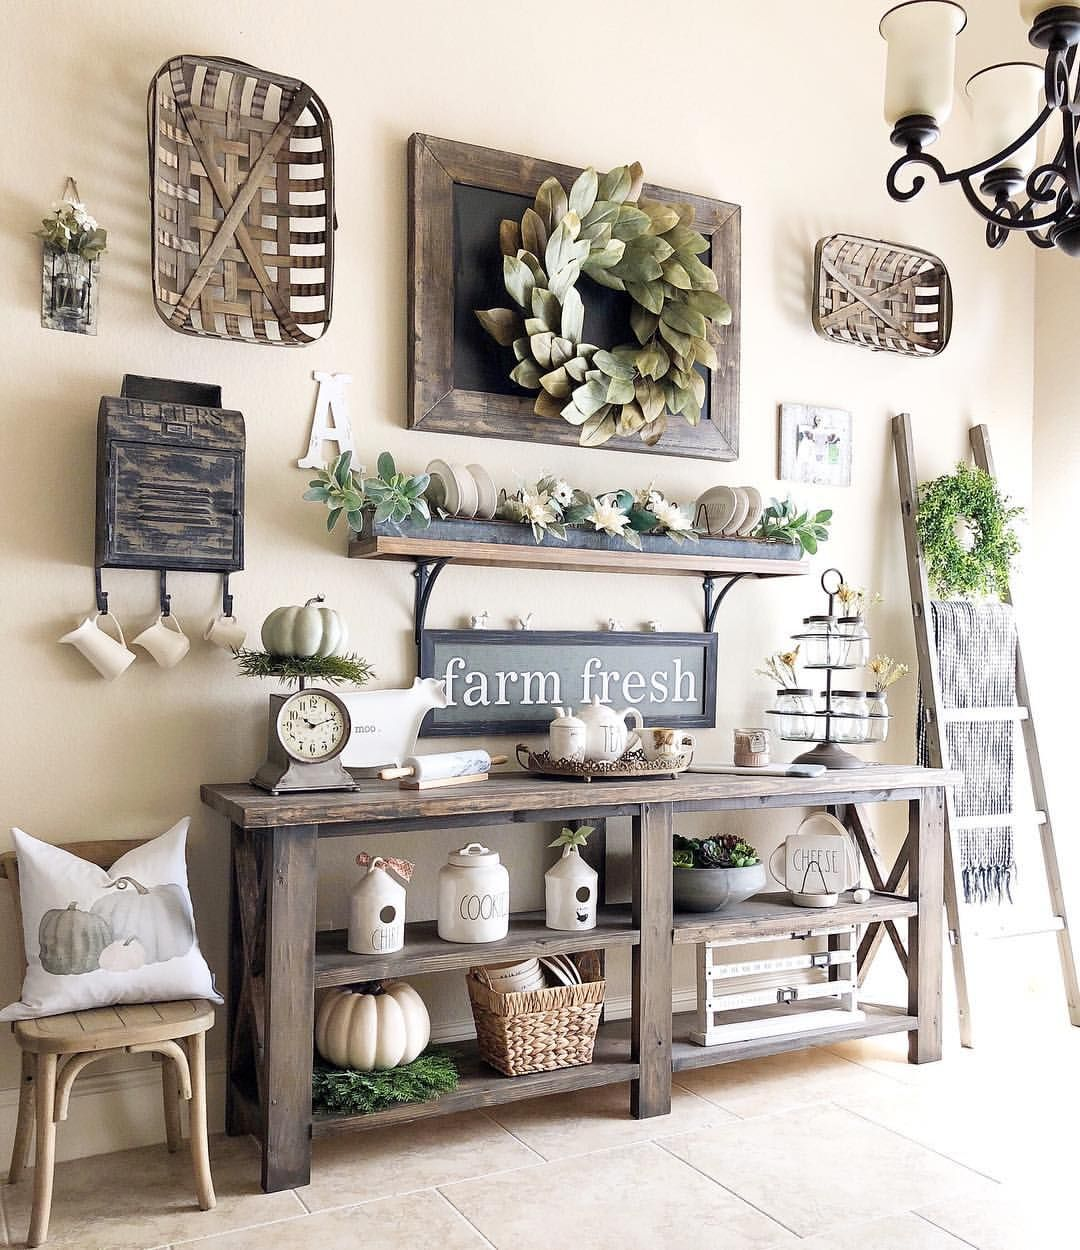 Country Farmhouse Living Room: Pin By Blessedonbluefinch On Blessedonbluefinch In 2019